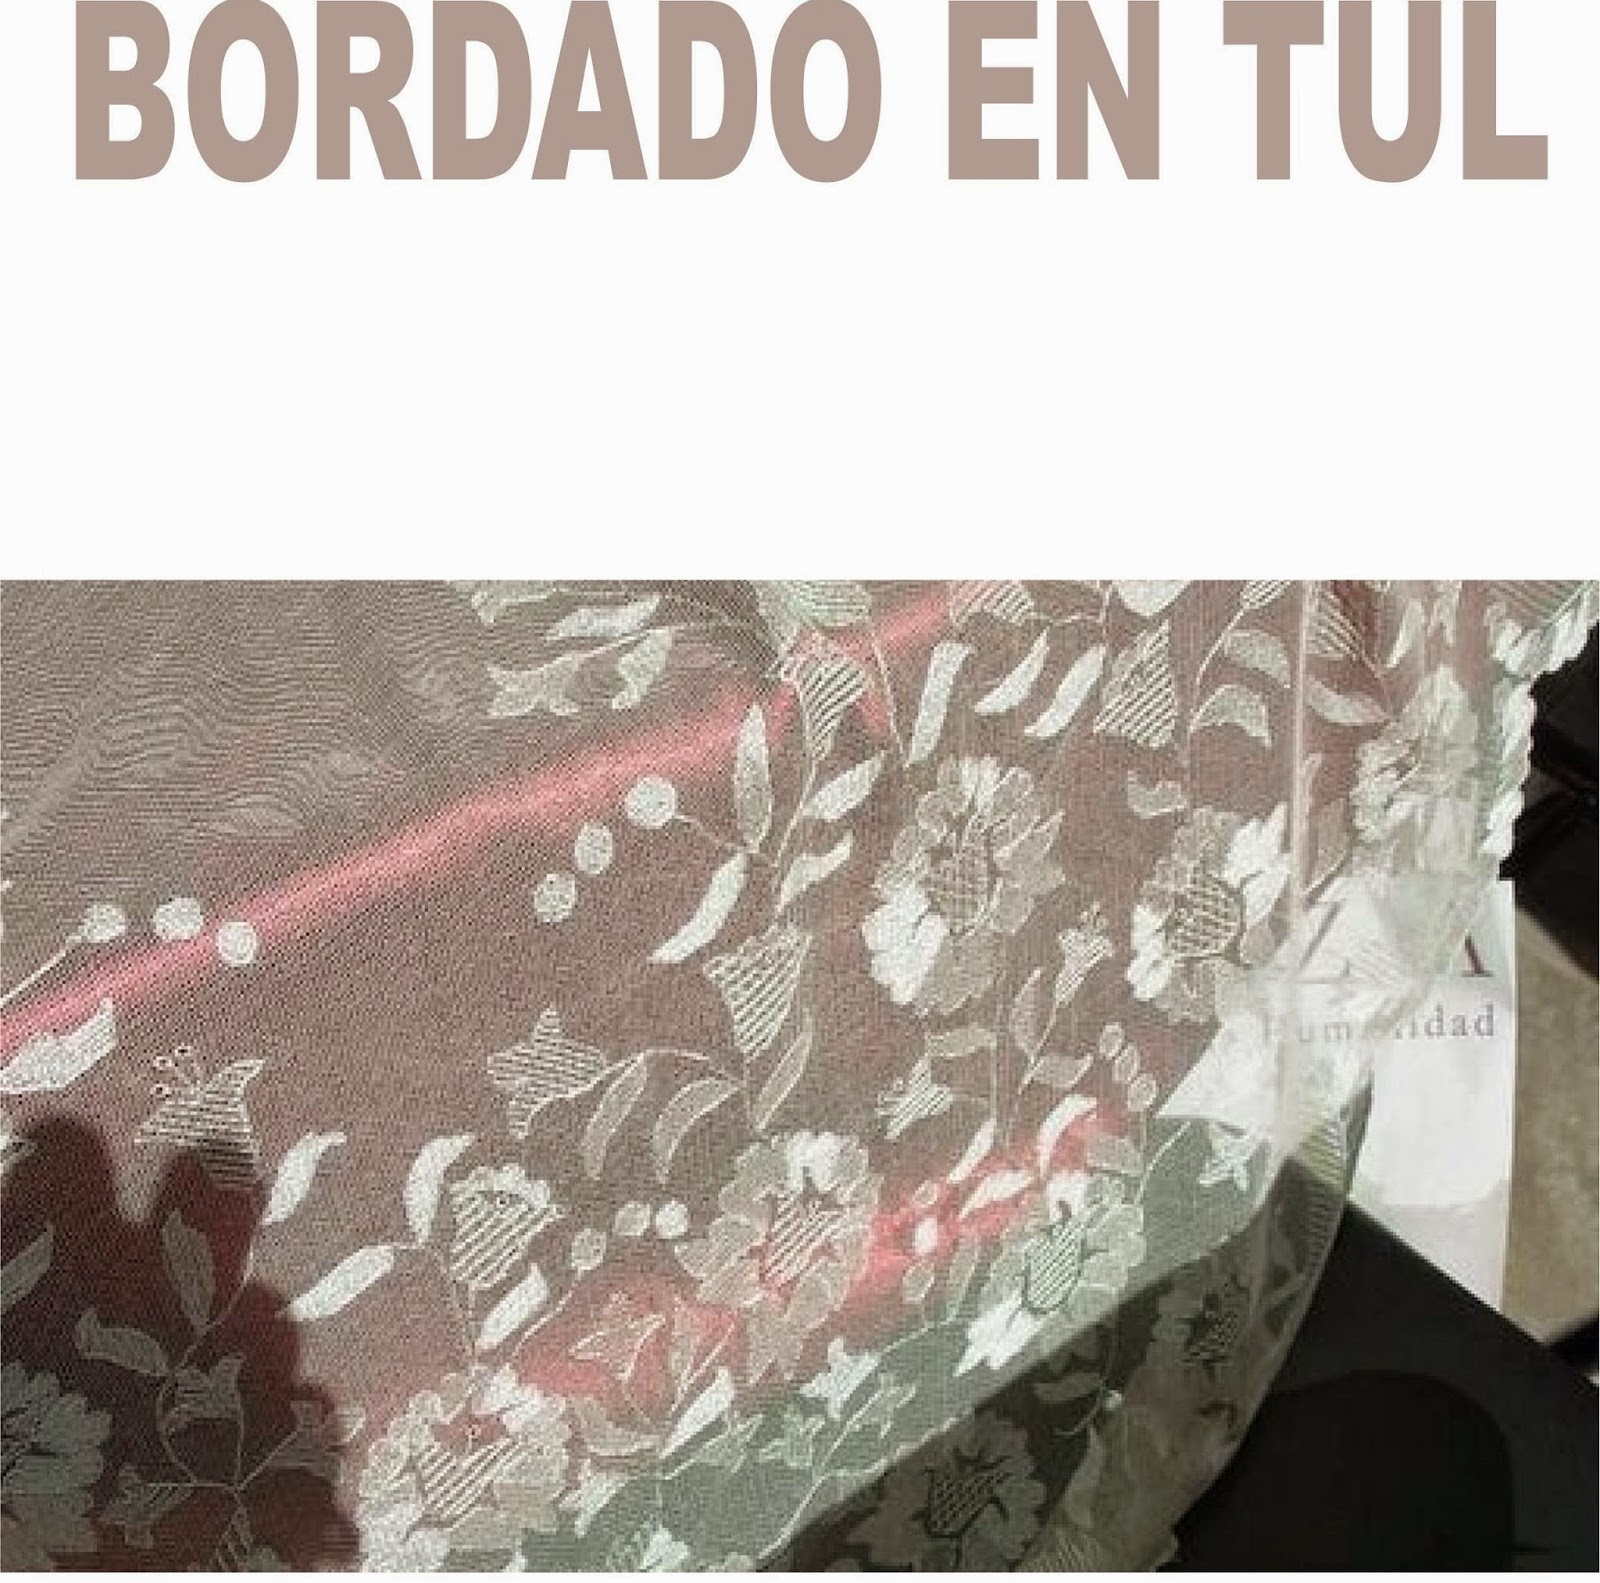 BORDADOS EN TUL